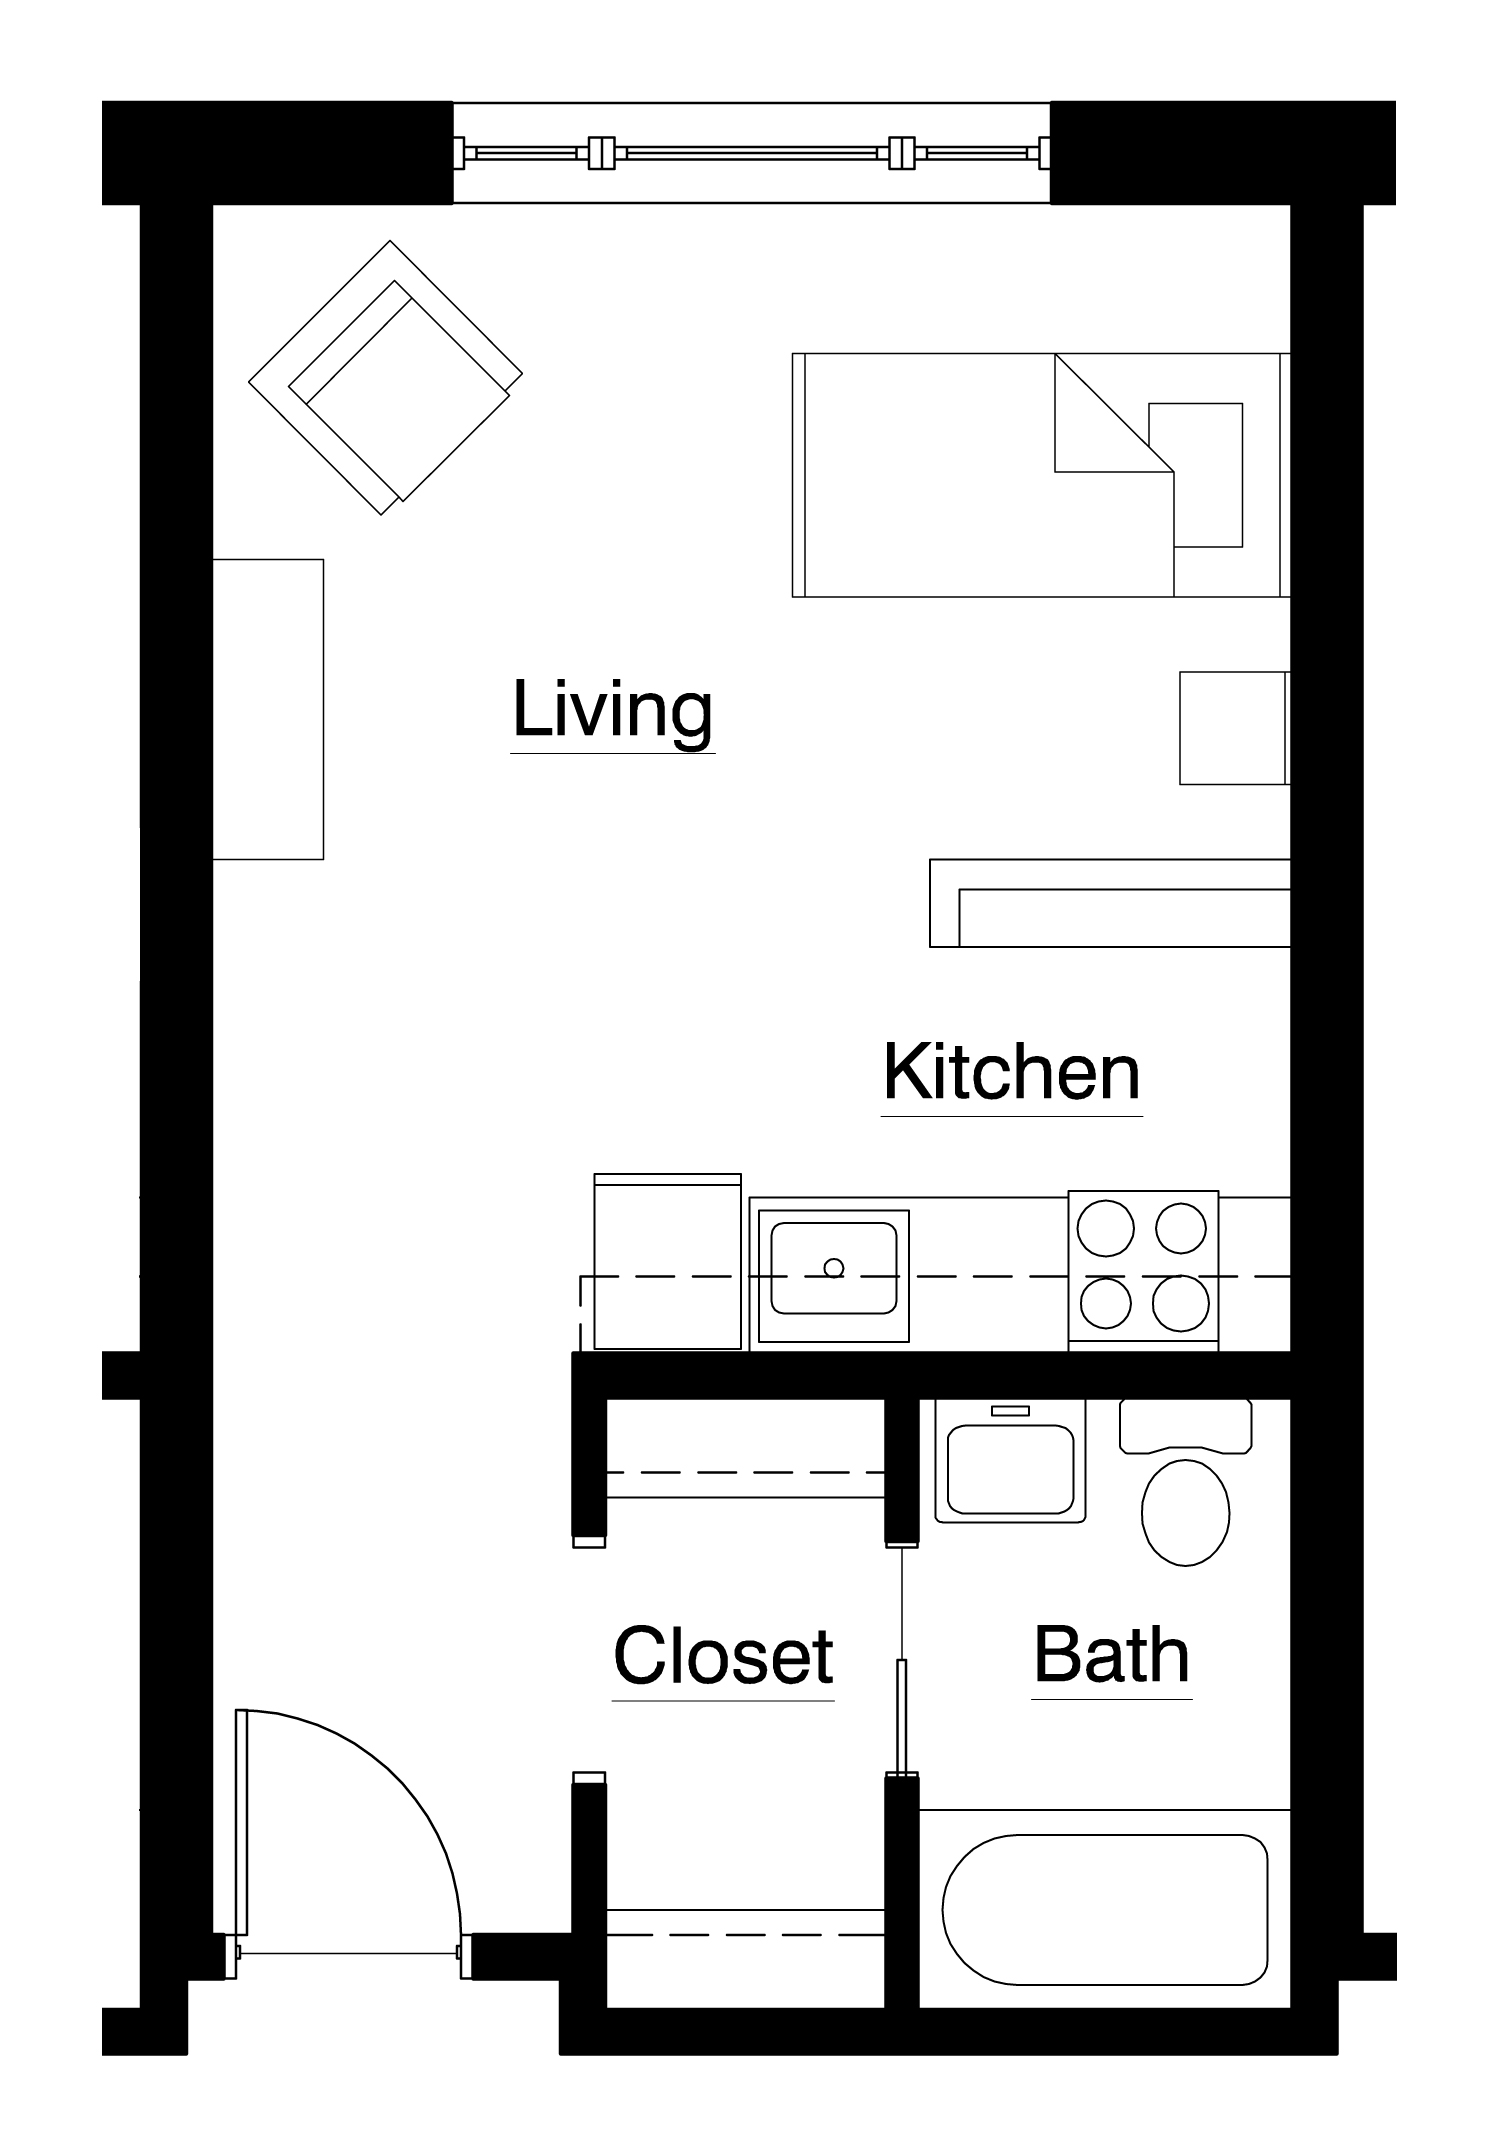 addendum k nicollet square unit plan home map design create a house plan online endearing home - Home Map Design